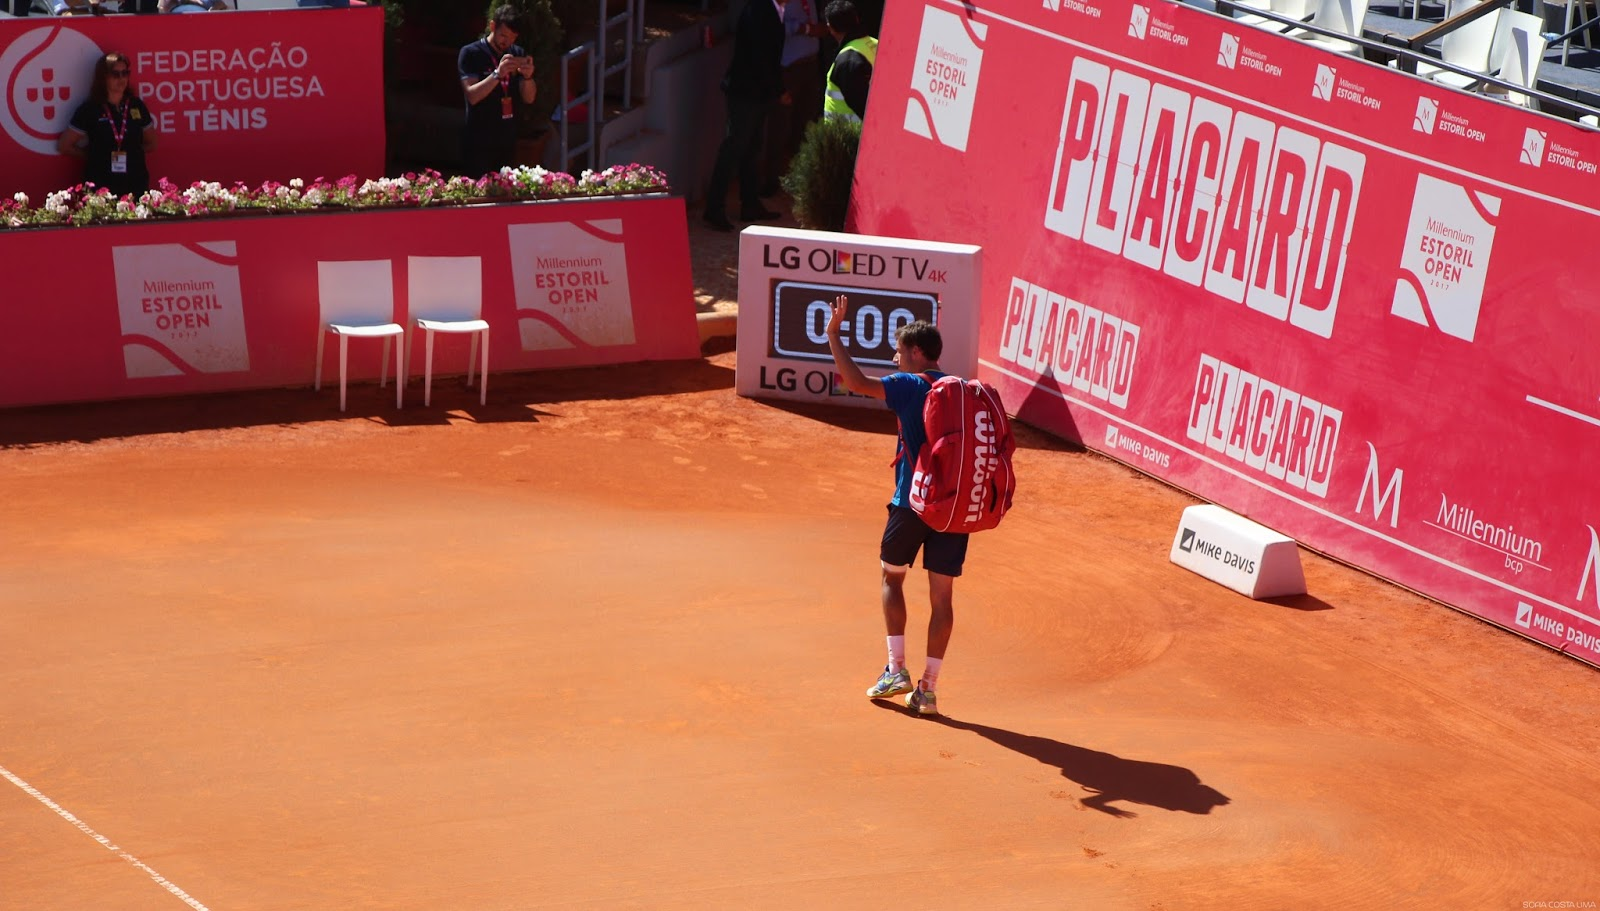 Pablo Carreño-Busta - Millennium Estoril Open 2017